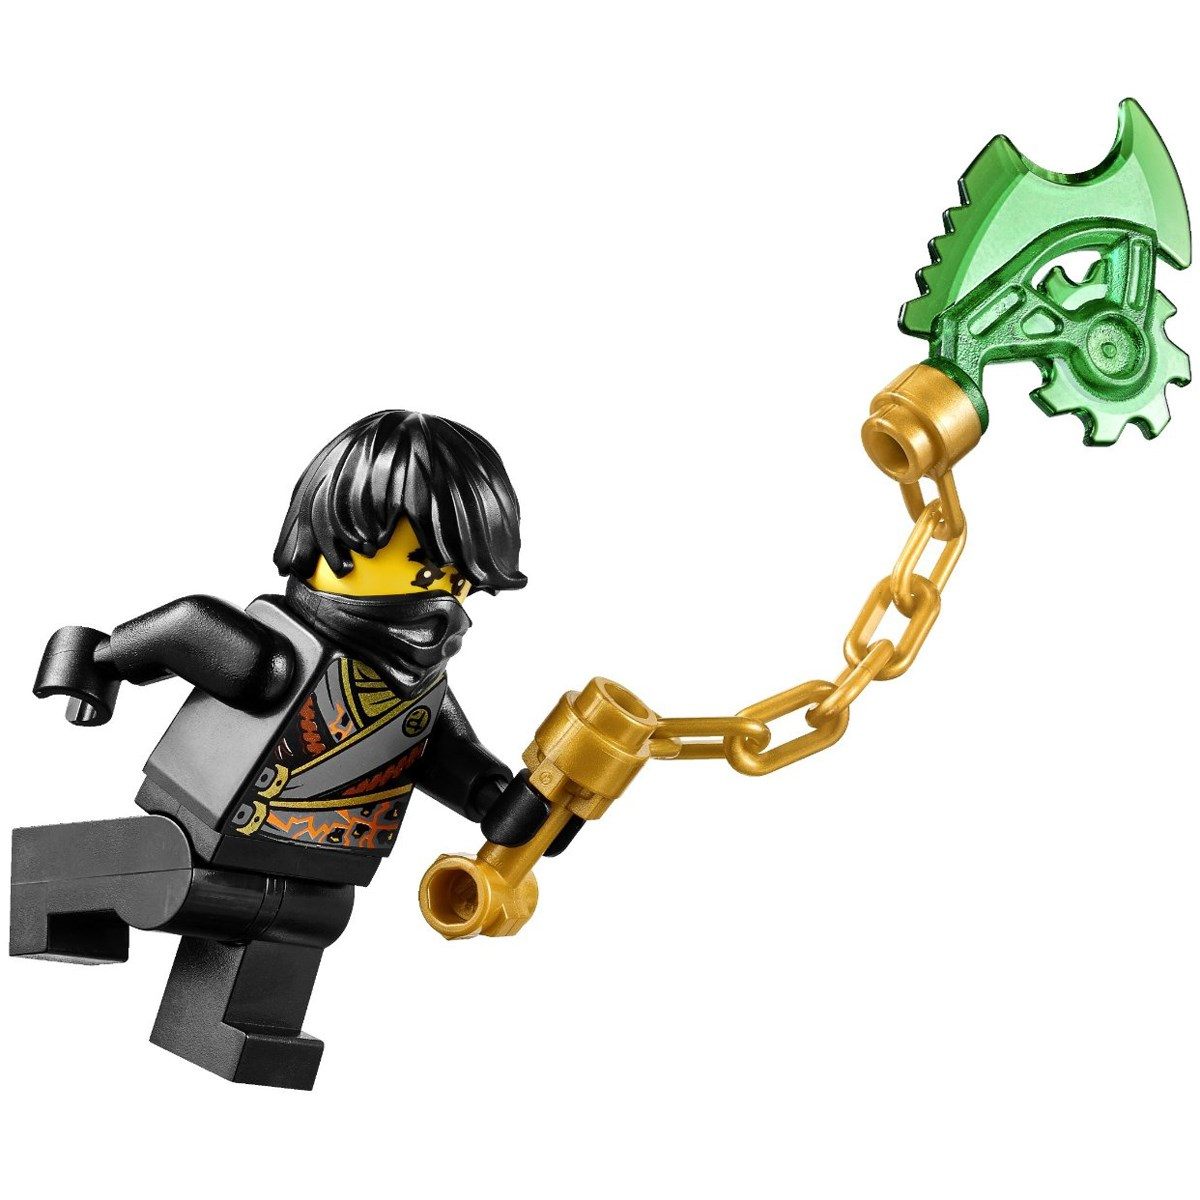 Do choi LEGO Ninjago 70720 - Co May Cua